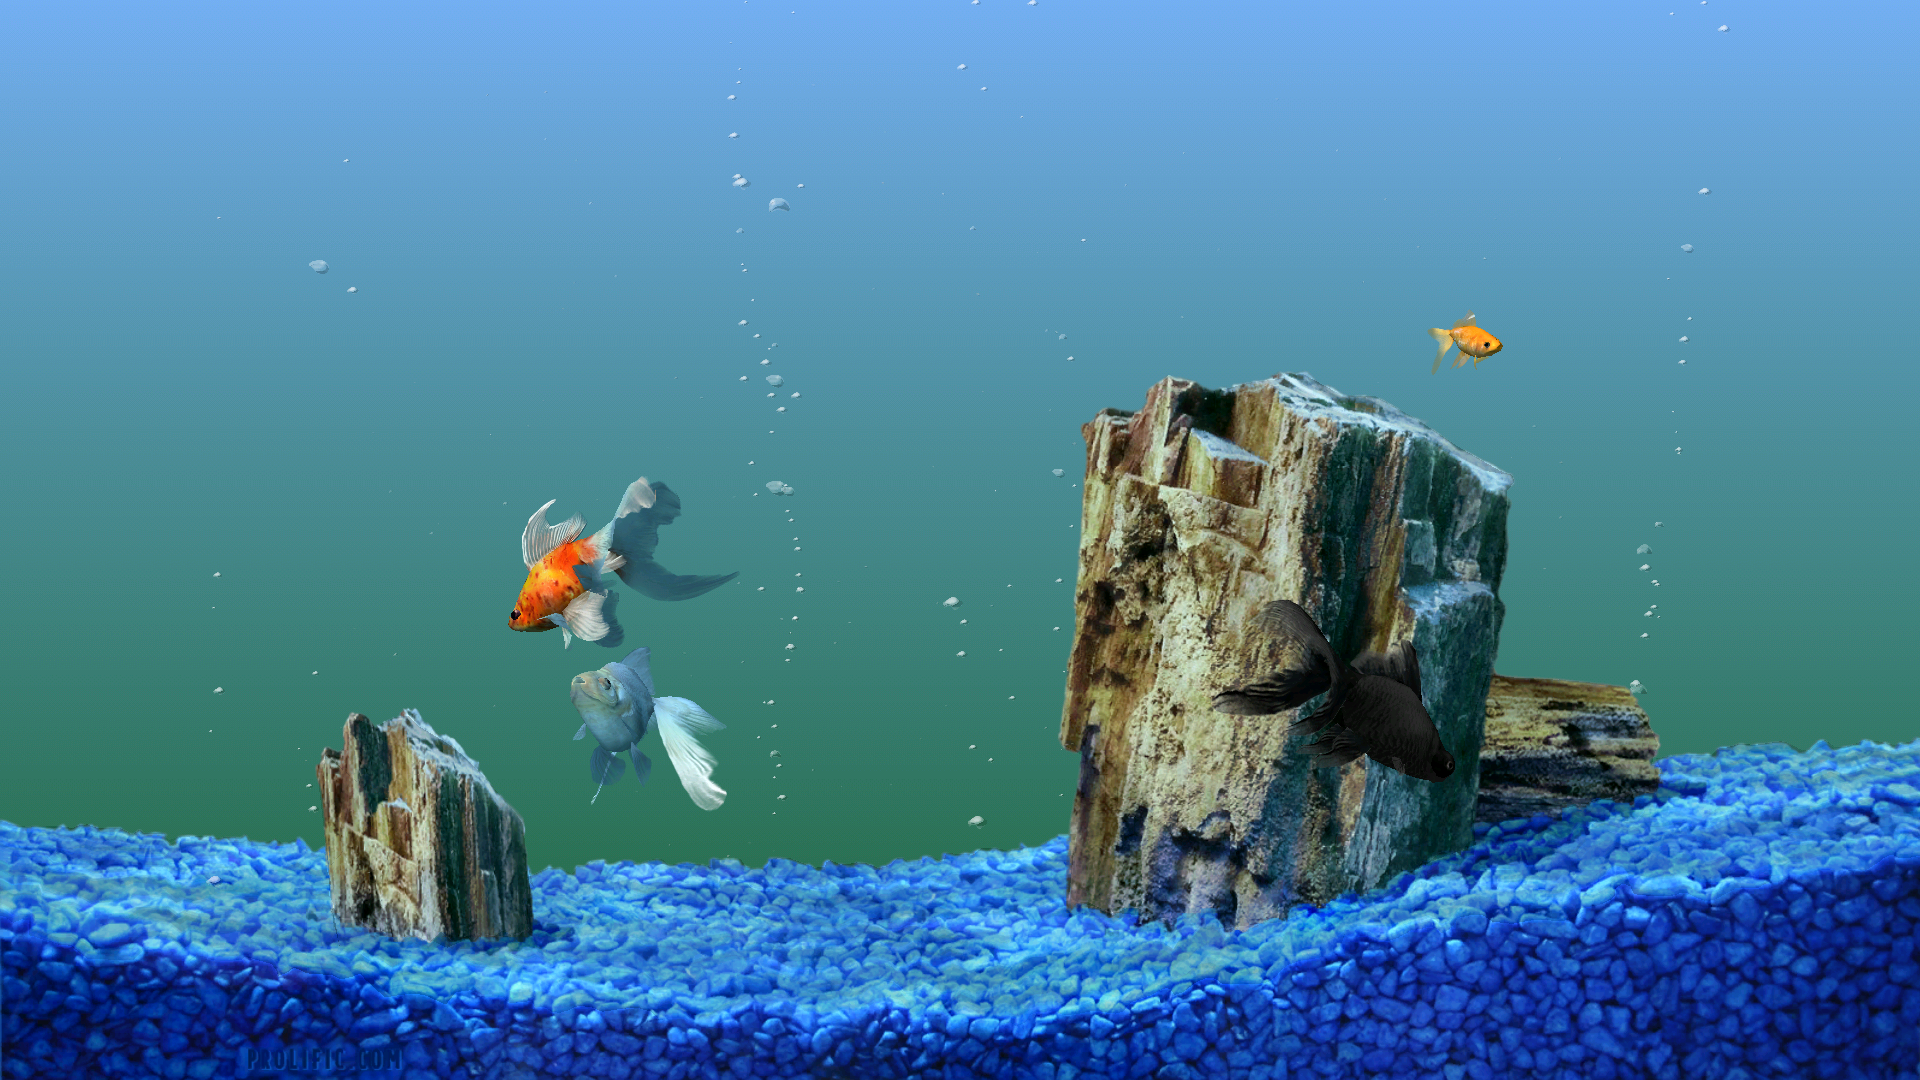 25 aquarium backgrounds wallpapers images pictures for Desktop fish tank